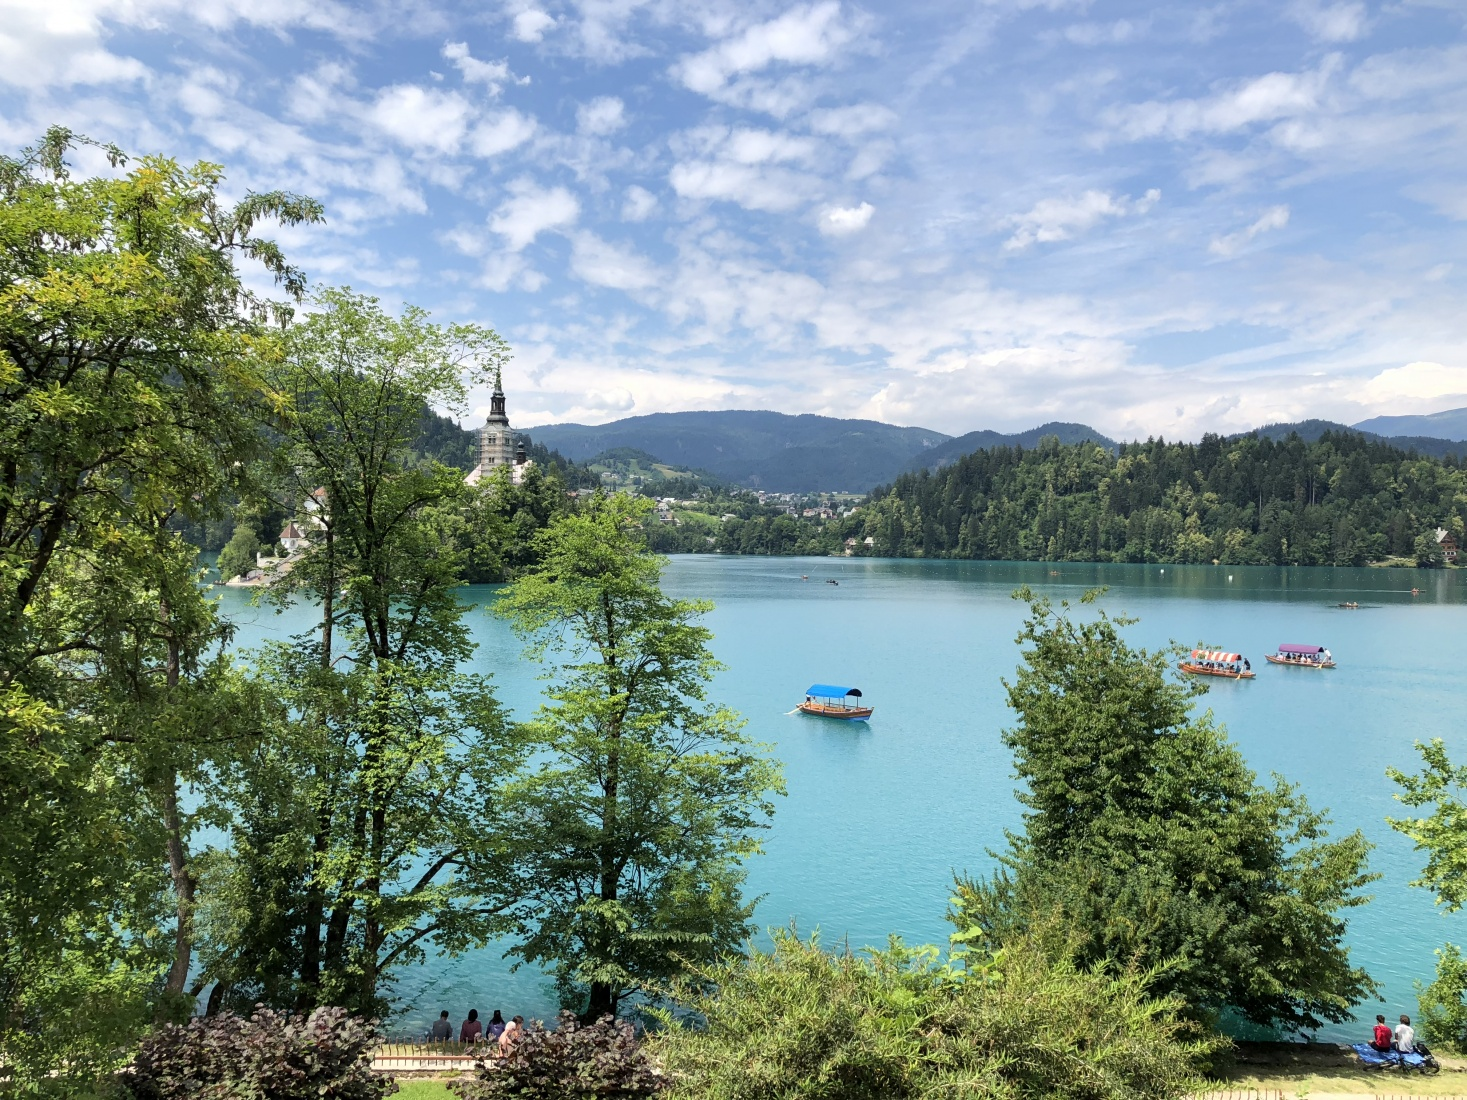 Lake Bled, Slovenia, boats on the lake and idyllic villages in the mountains.